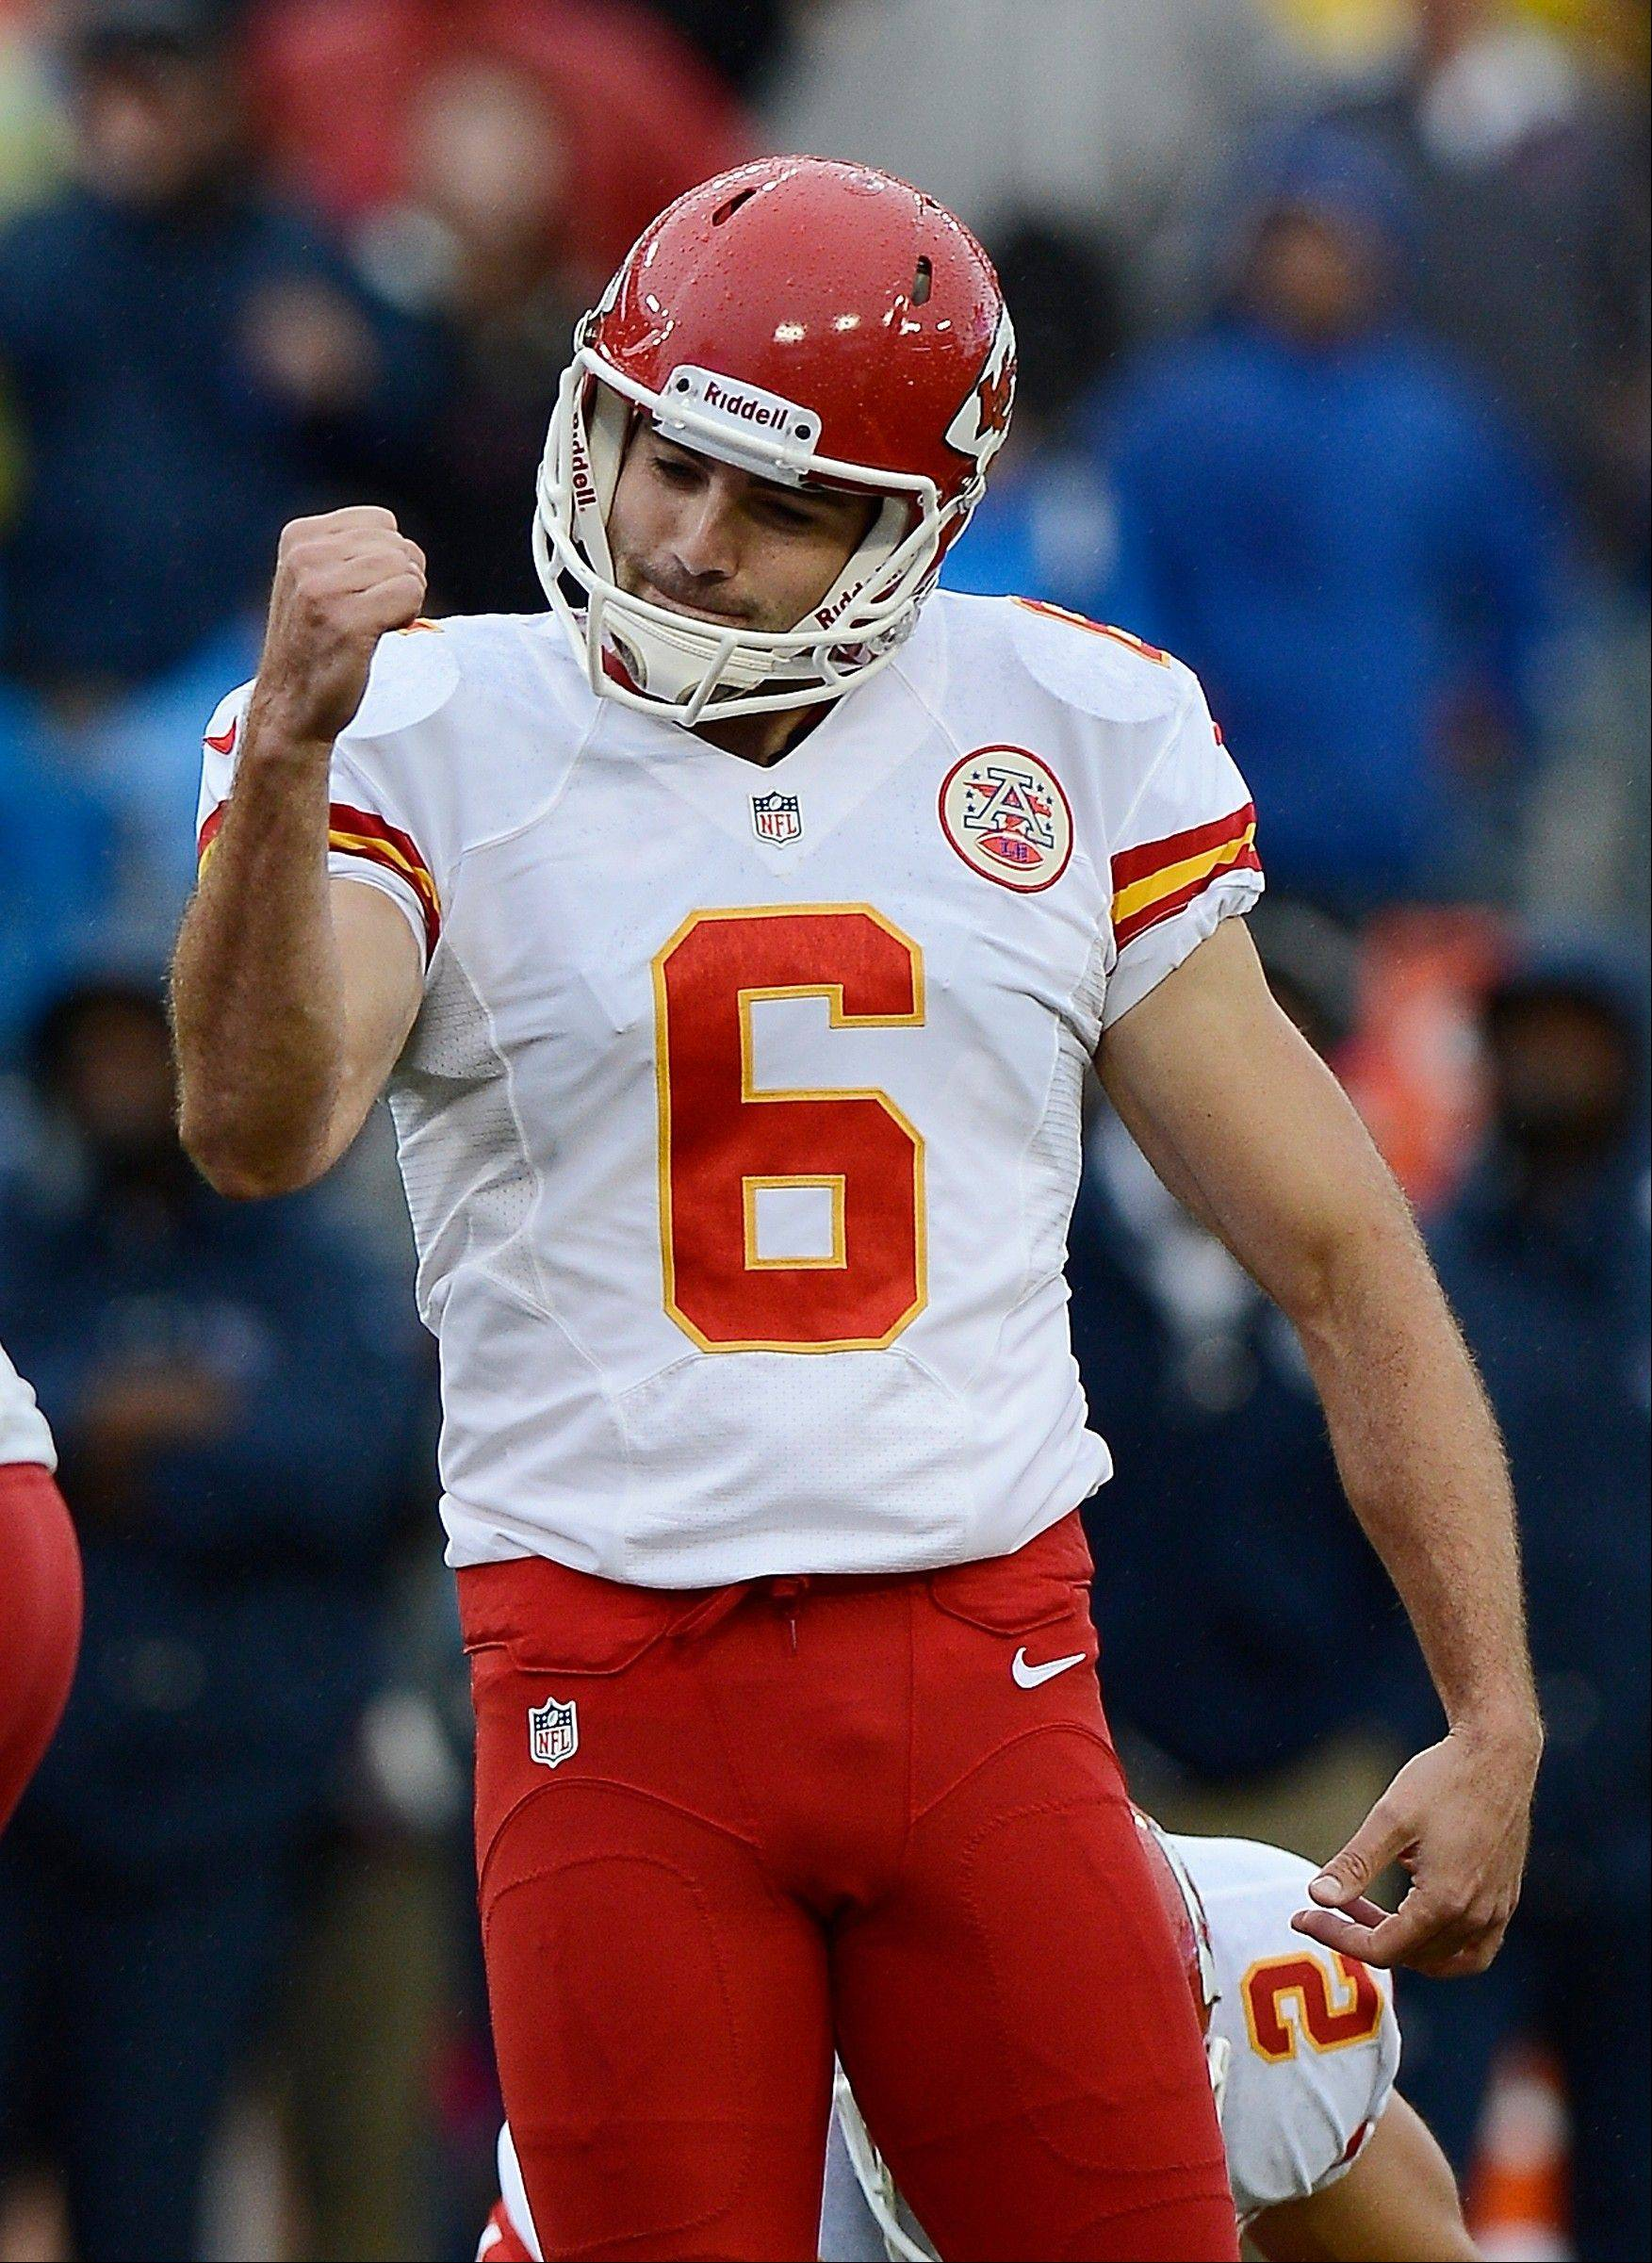 Kansas City Chiefs kicker Ryan Succop celebrates after making a 33-yard field goal against the Tennessee Titans in the fourth quarter of an NFL football game on Sunday, Oct. 6, 2013, in Nashville, Tenn. The Chiefs won 26-17.